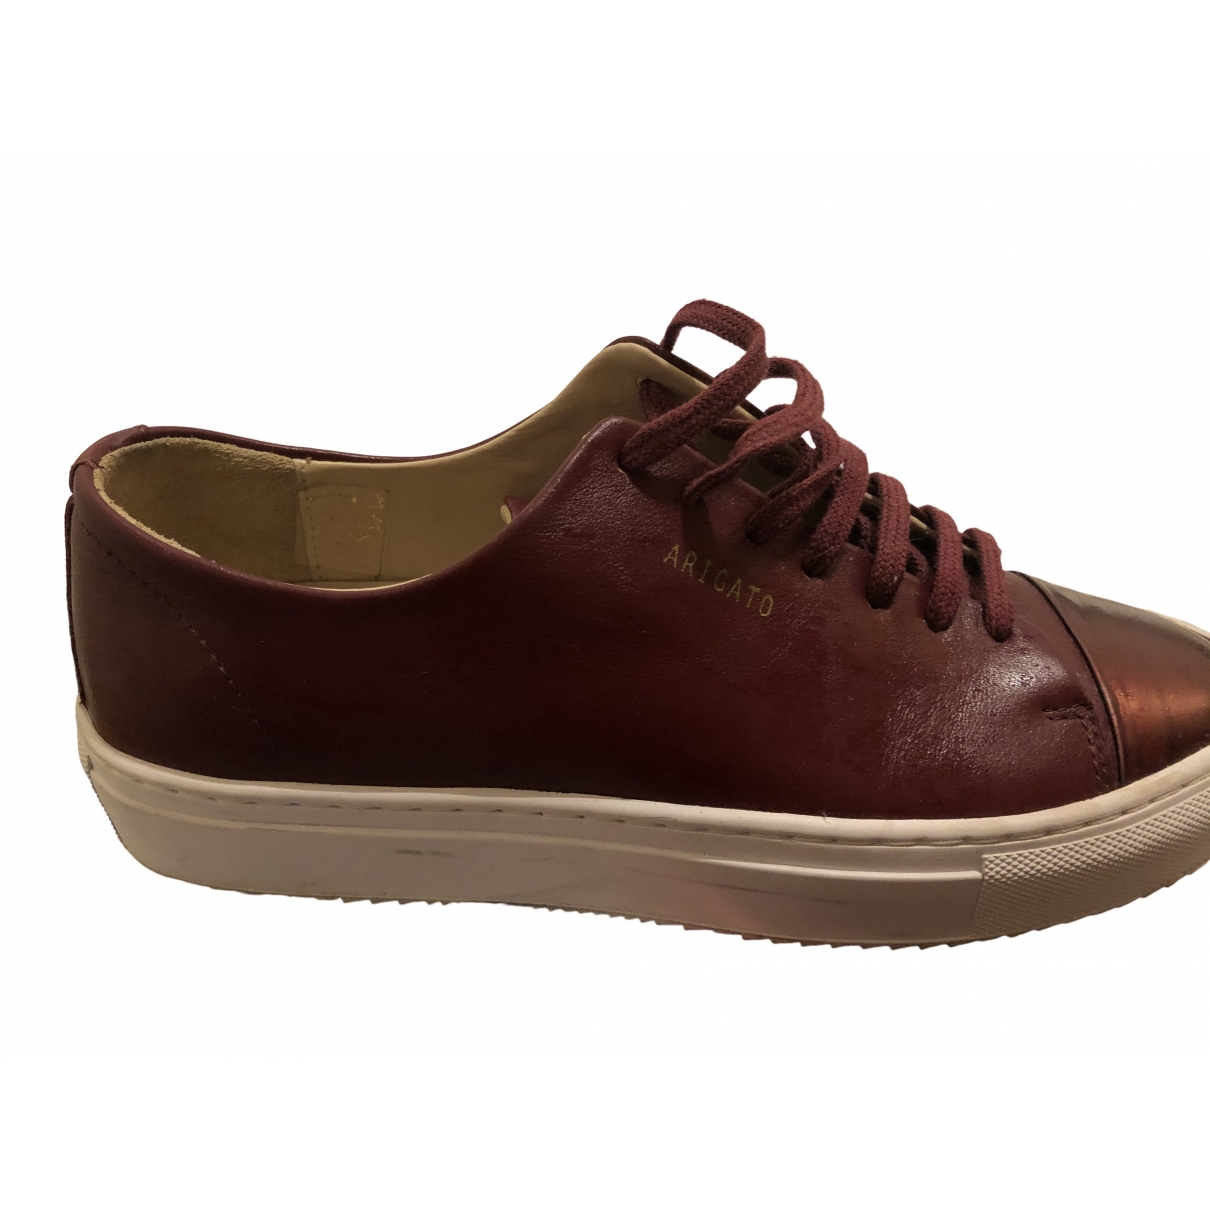 Axel Arigato \N Burgundy Leather Trainers for Women 37 EU